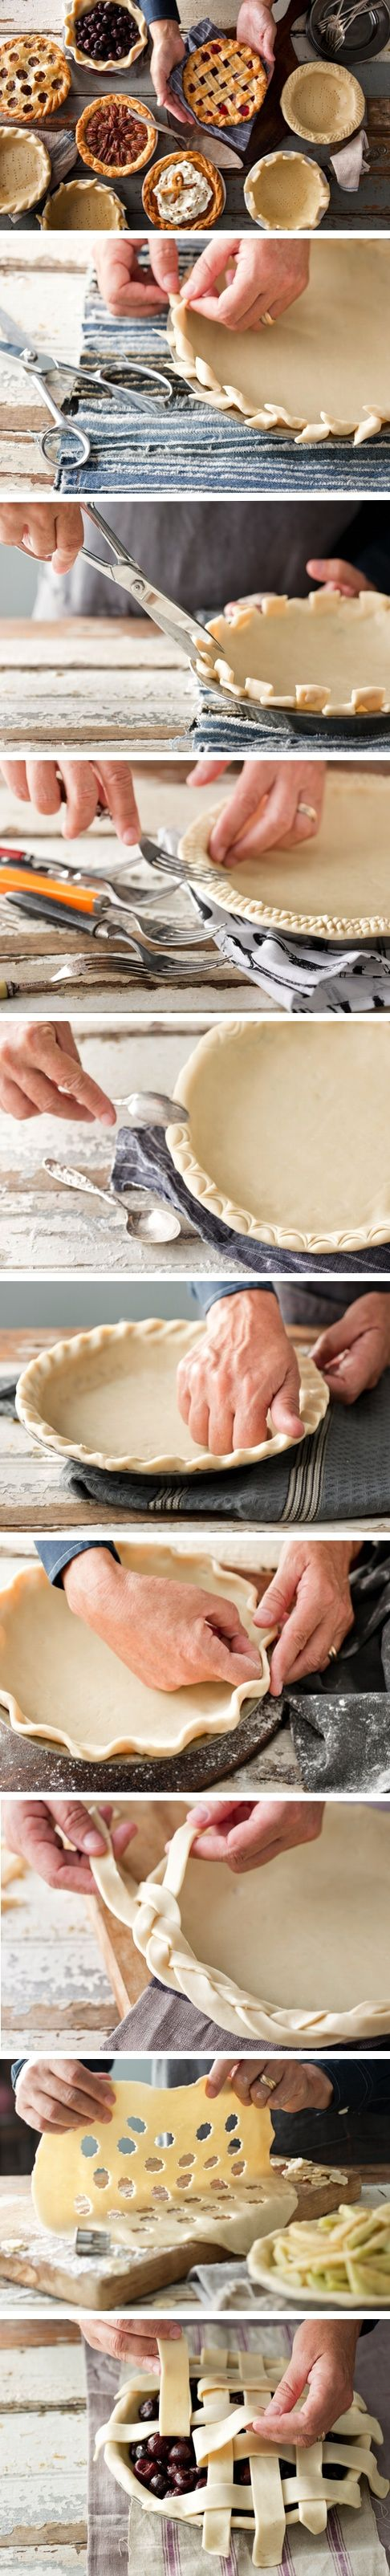 Pie Crusts! #pie